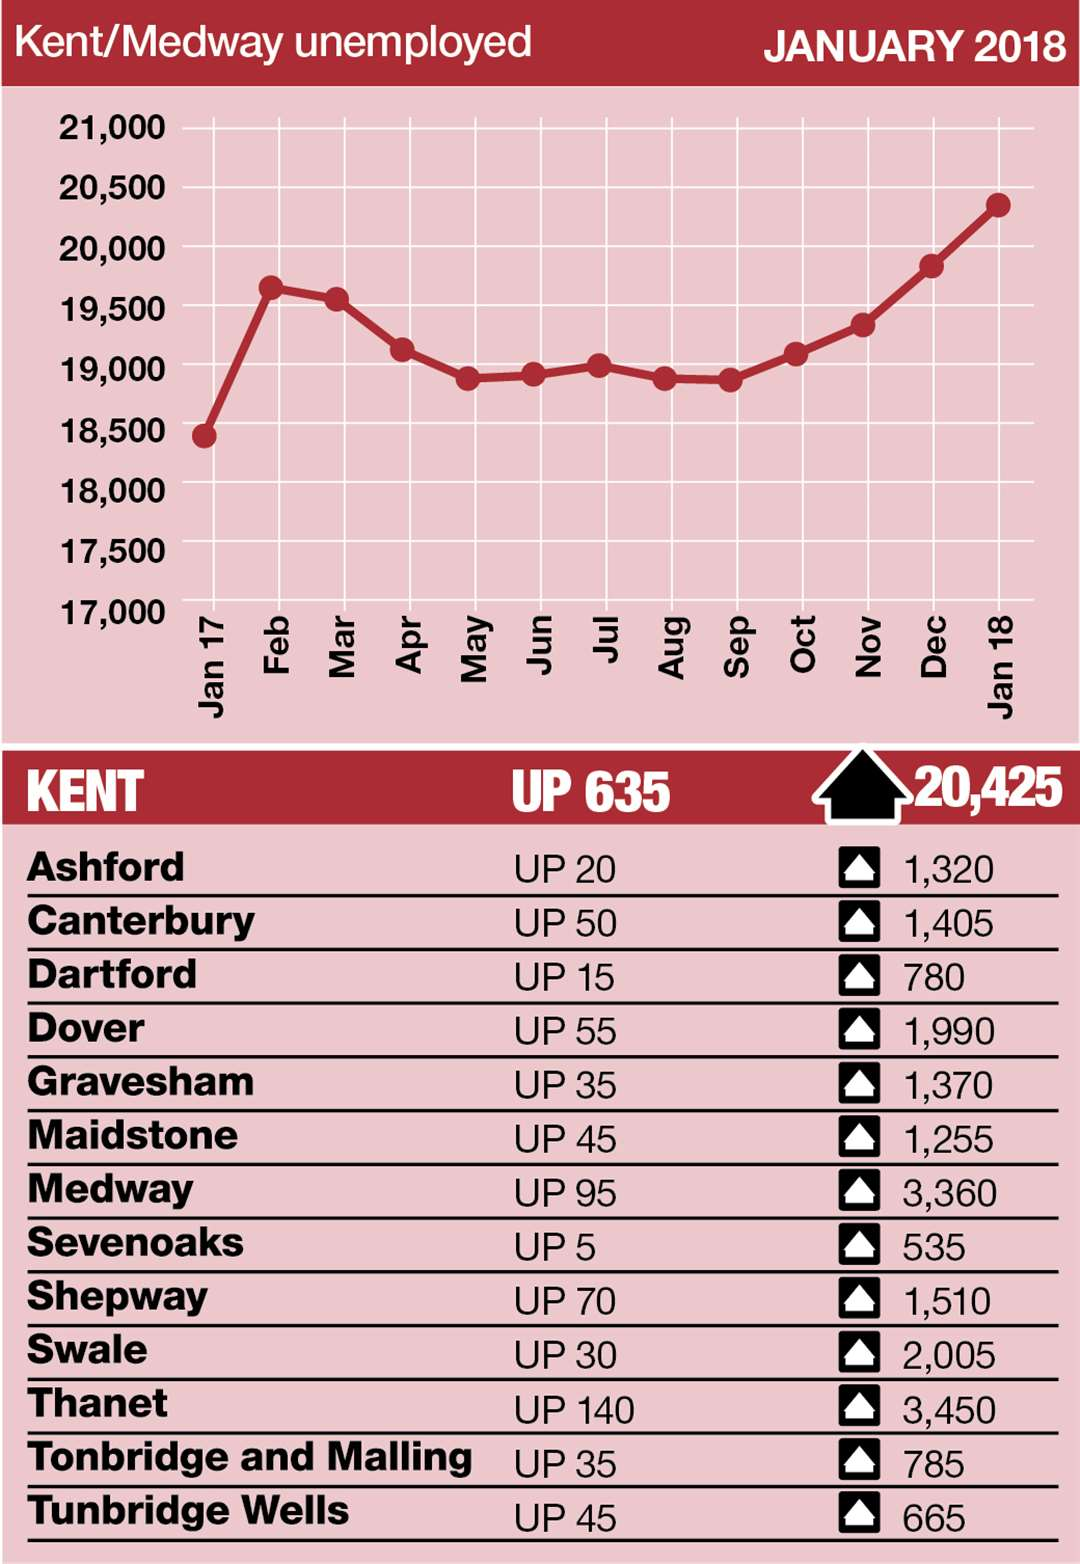 It is the fourth straight month the number of claimants in Kent has risen